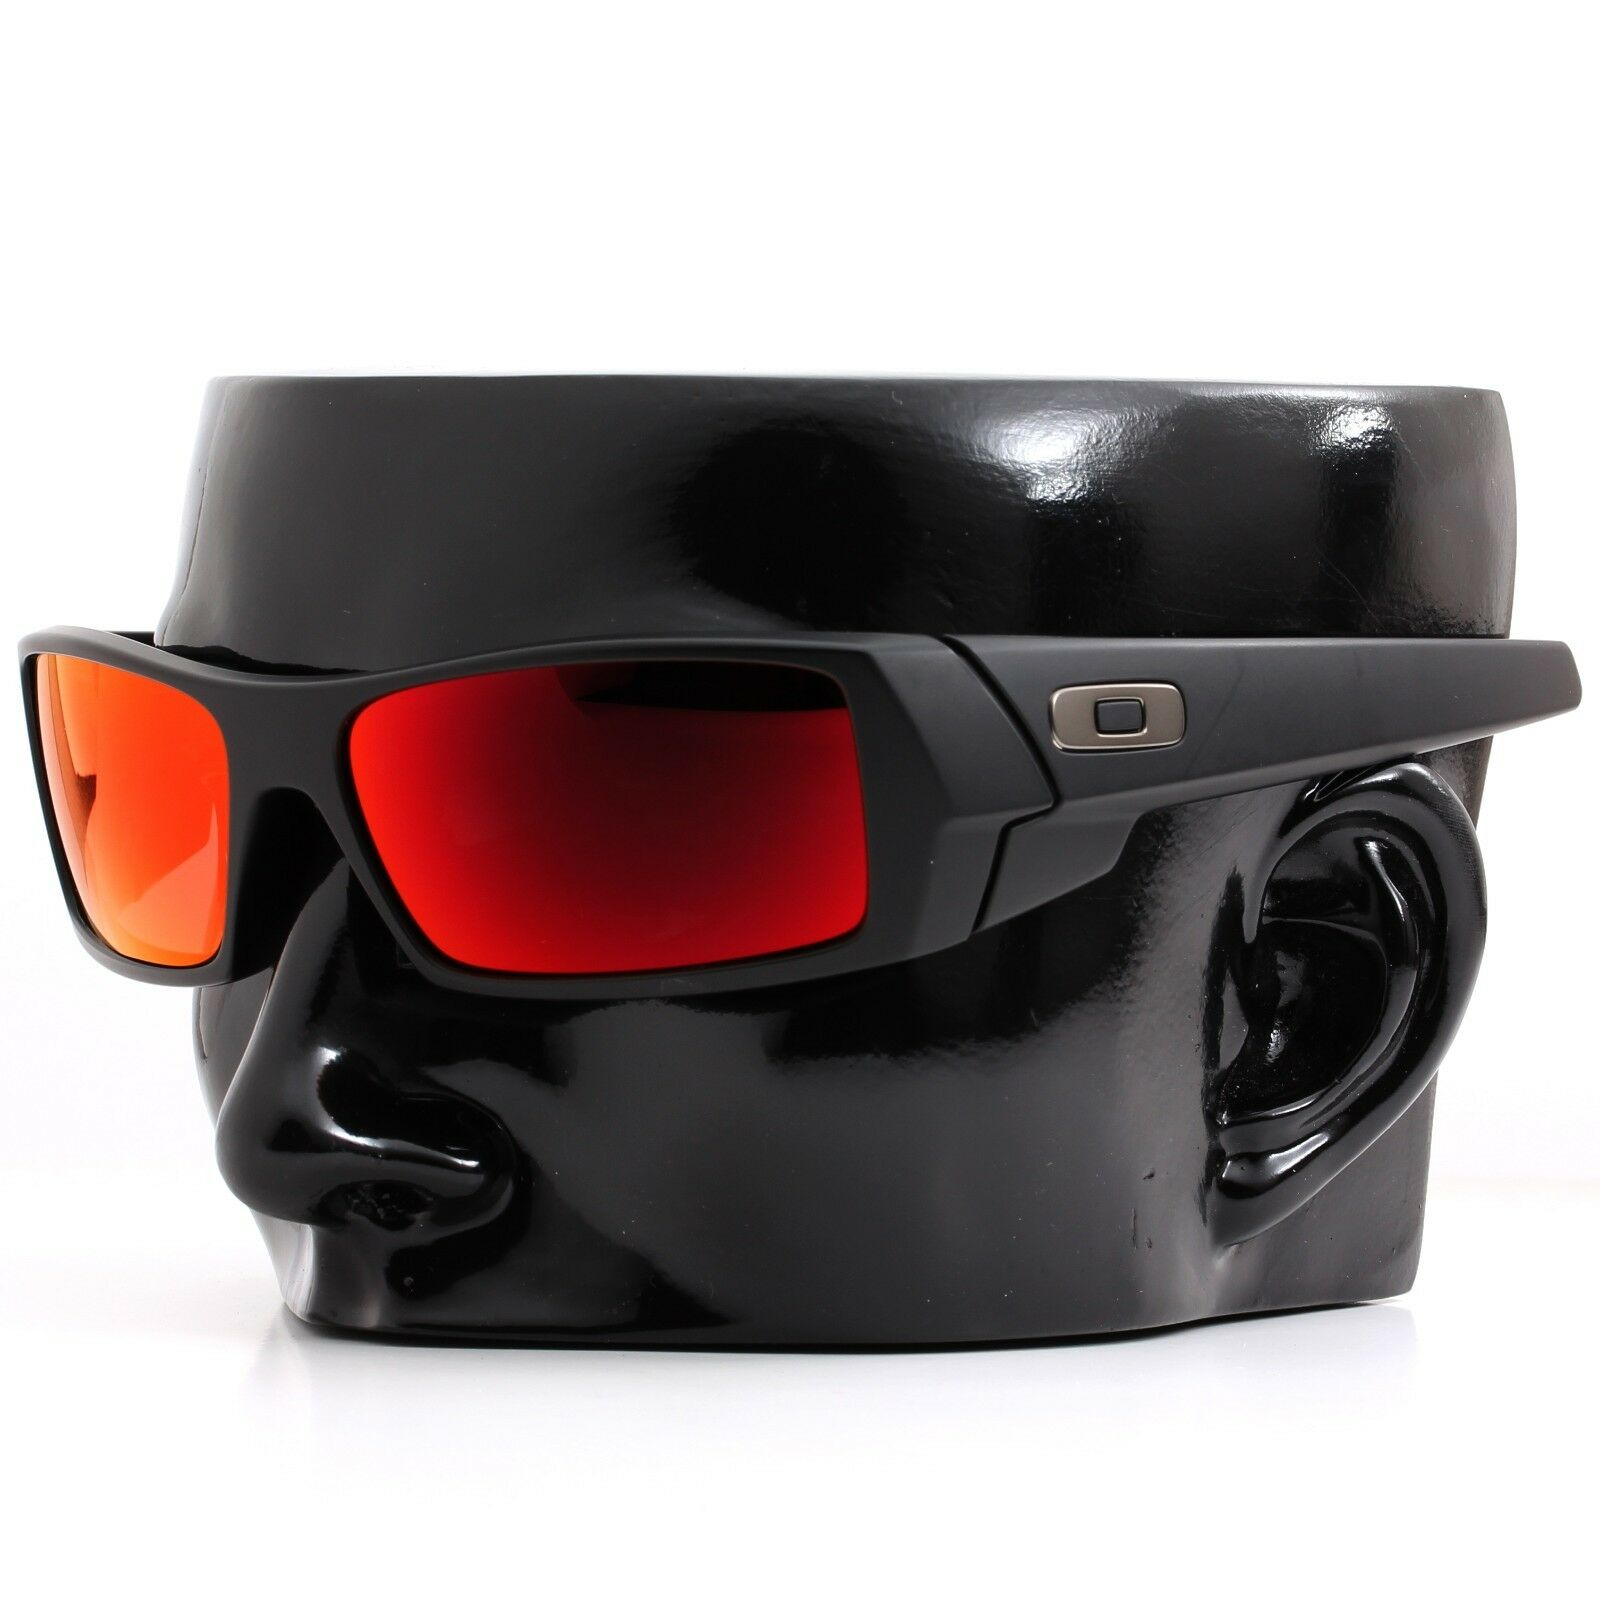 oakley gascan sunglass lenses  polarized ikon iridium replacement lenses for oakley gascan + red mirror